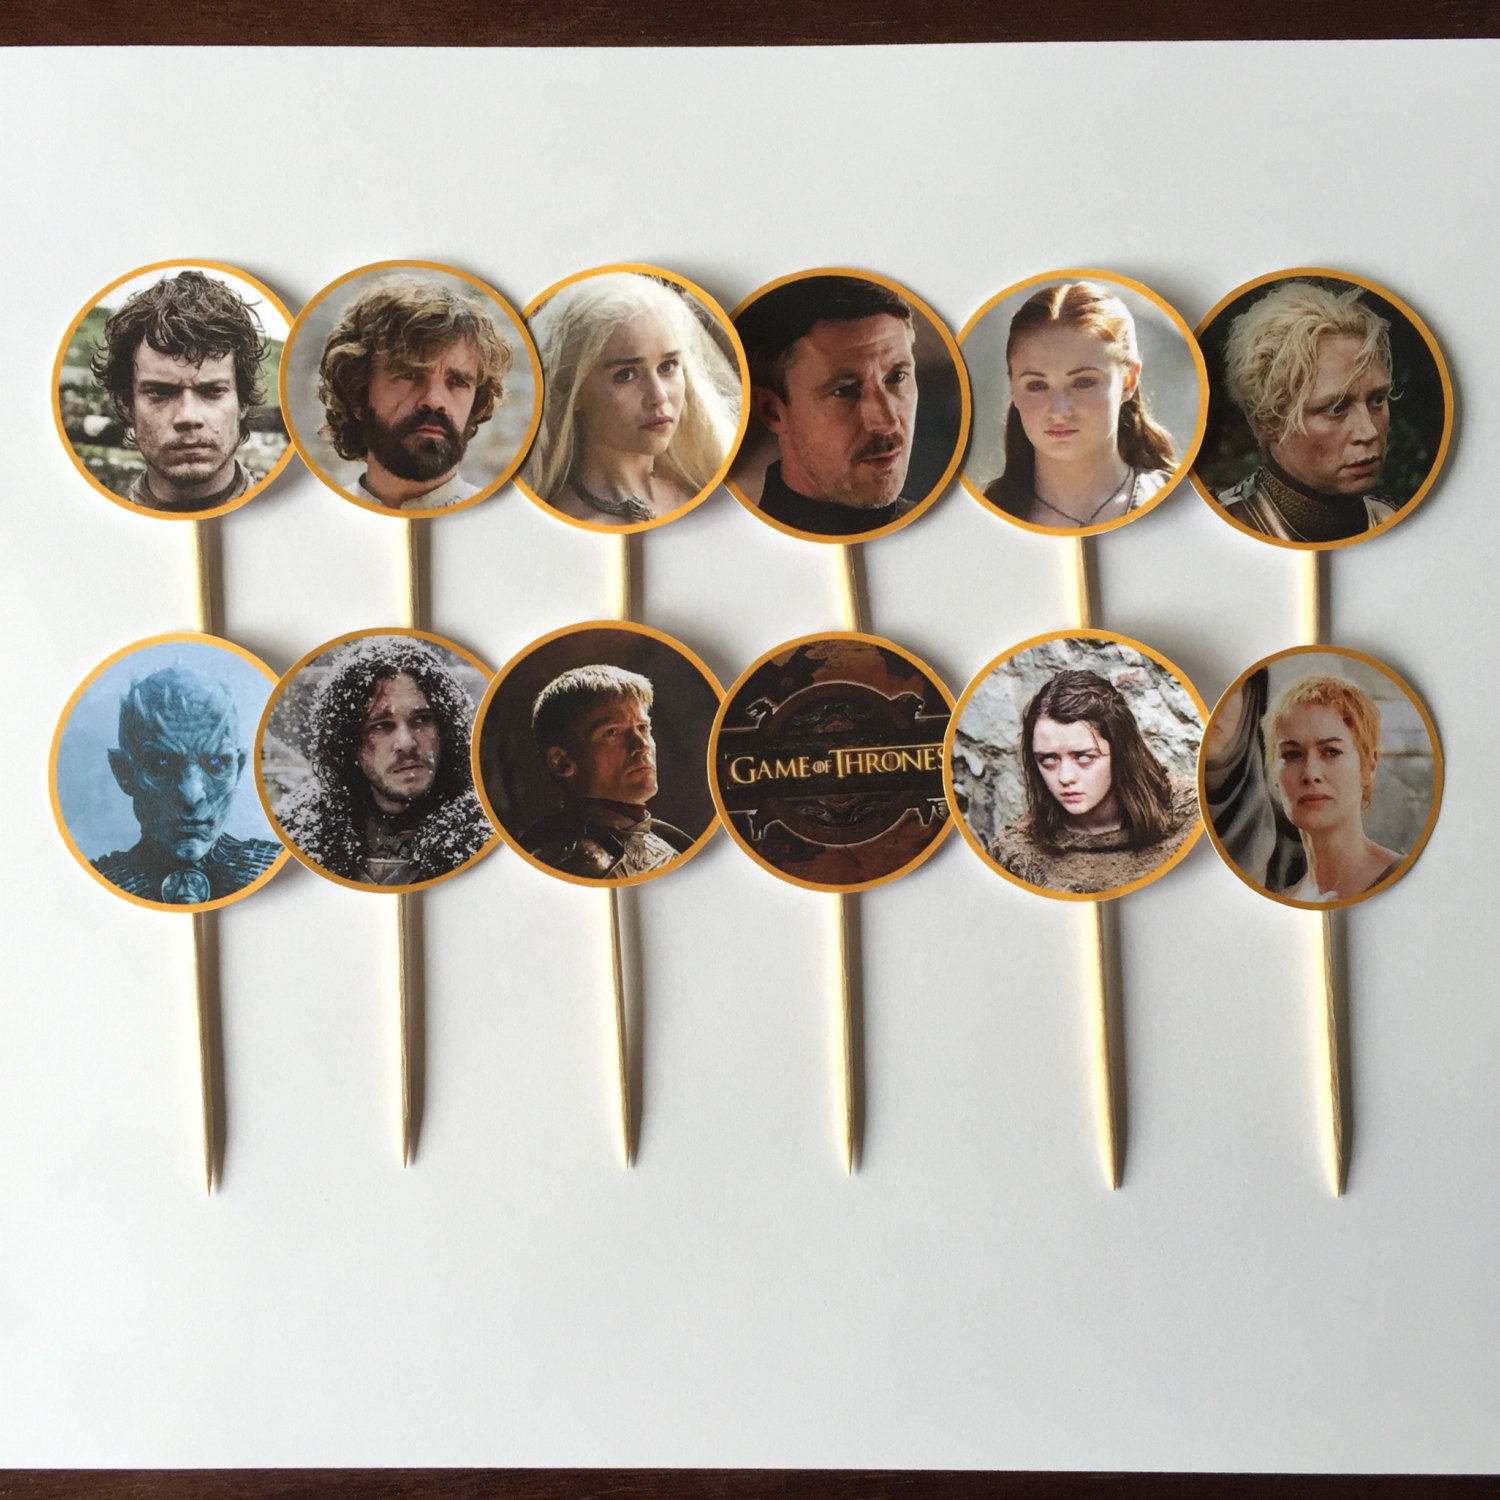 25-game-of-thrones-theme-designer-cakes-cupcakes-mumbai-20-photo-cake-pops